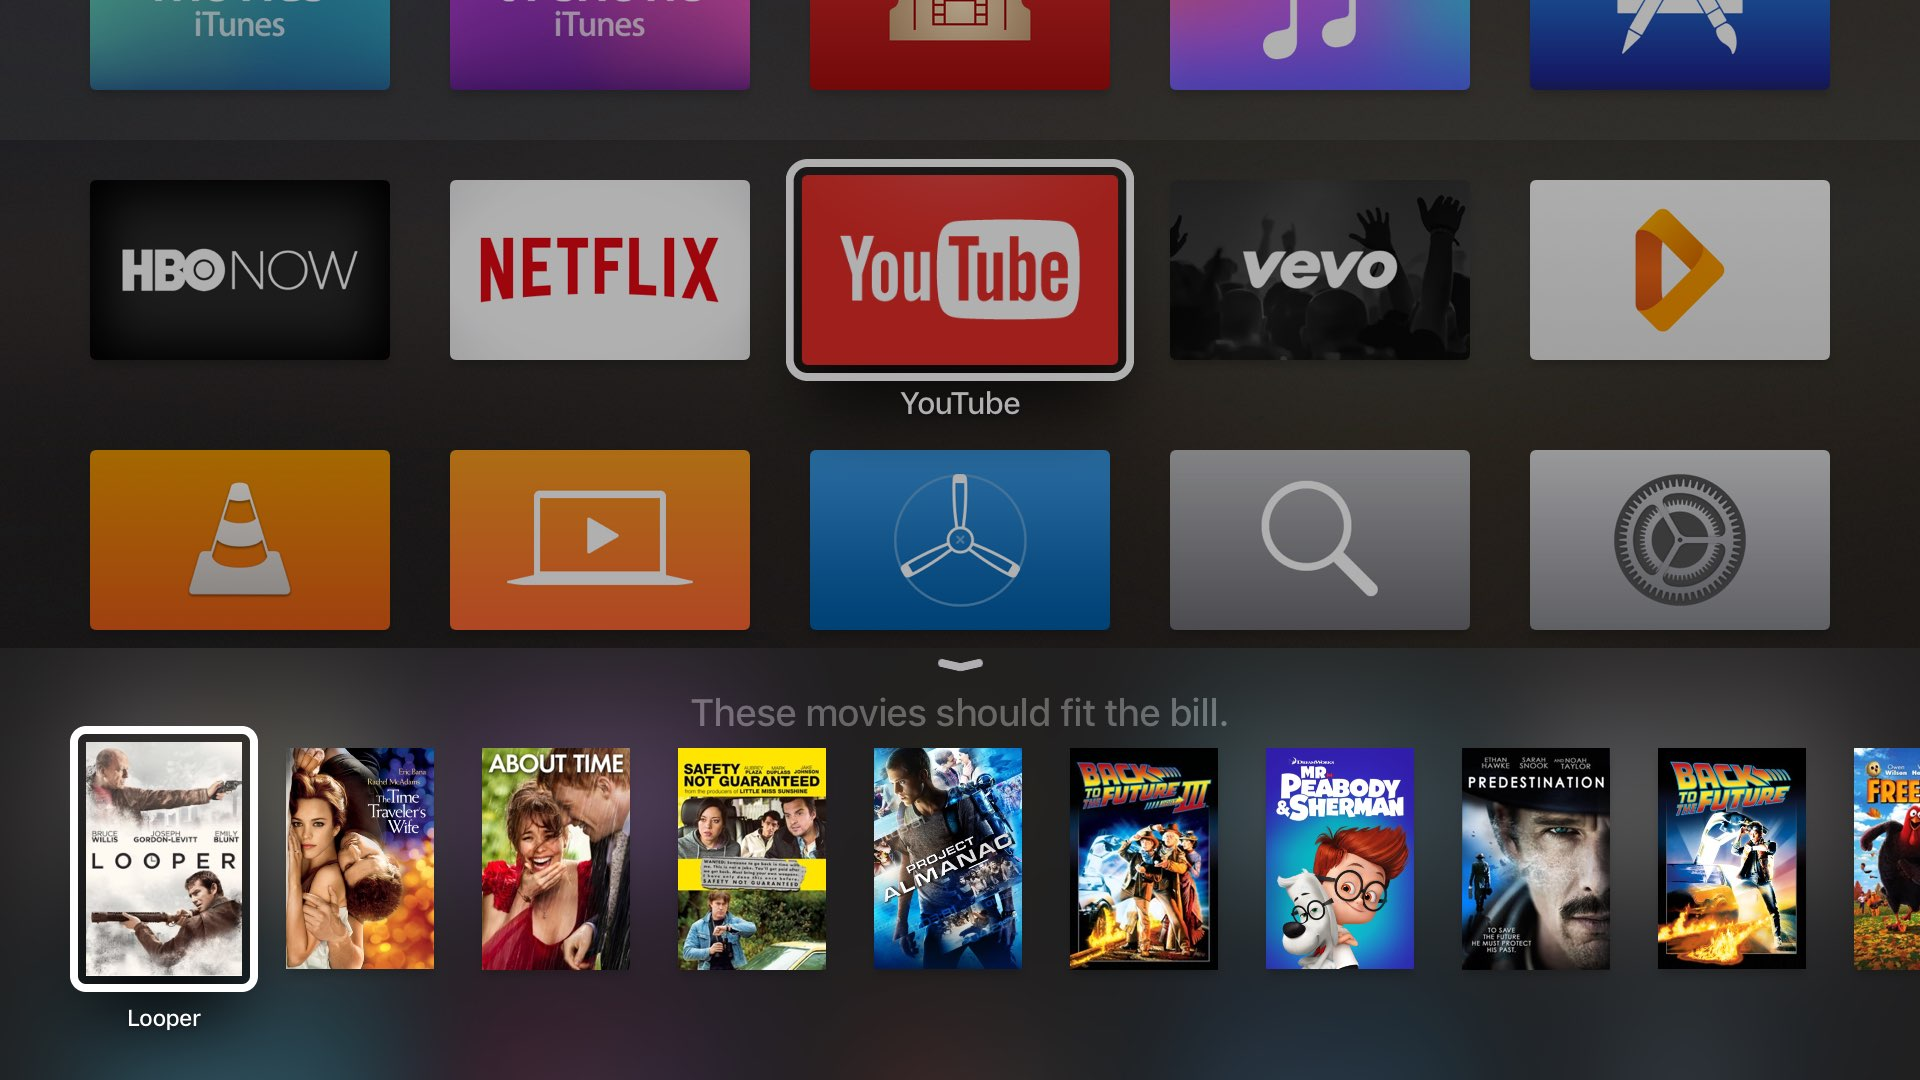 tvOS Siri Movies search Apple TV screenshot 002